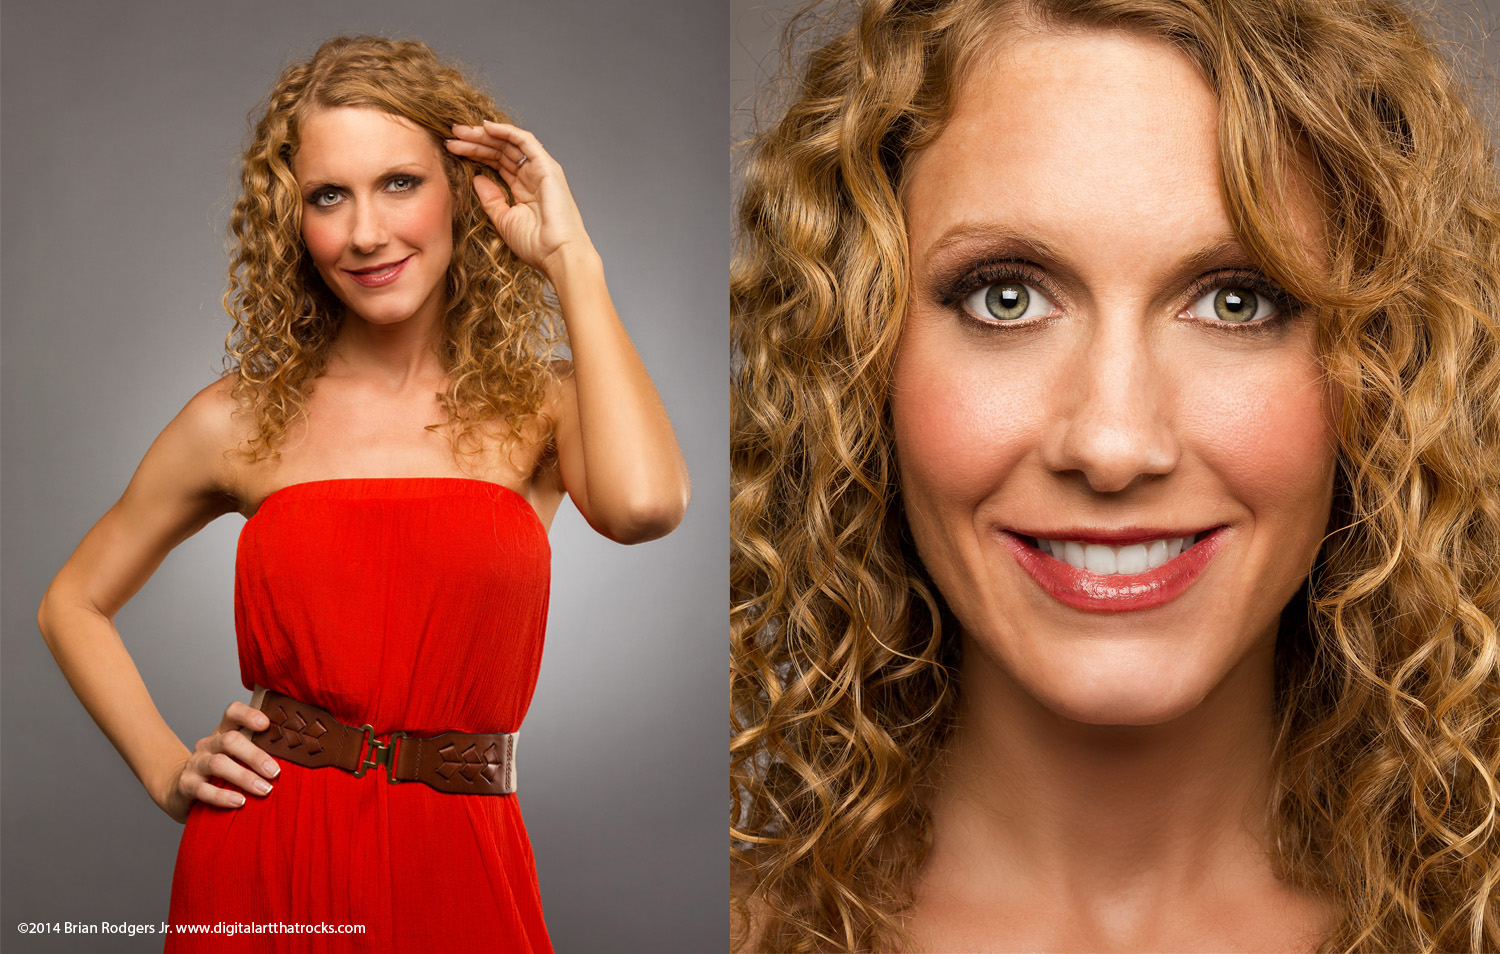 south-bend-professional-headshot-photography-for-business-and-advertising-digital-art-that-rocks